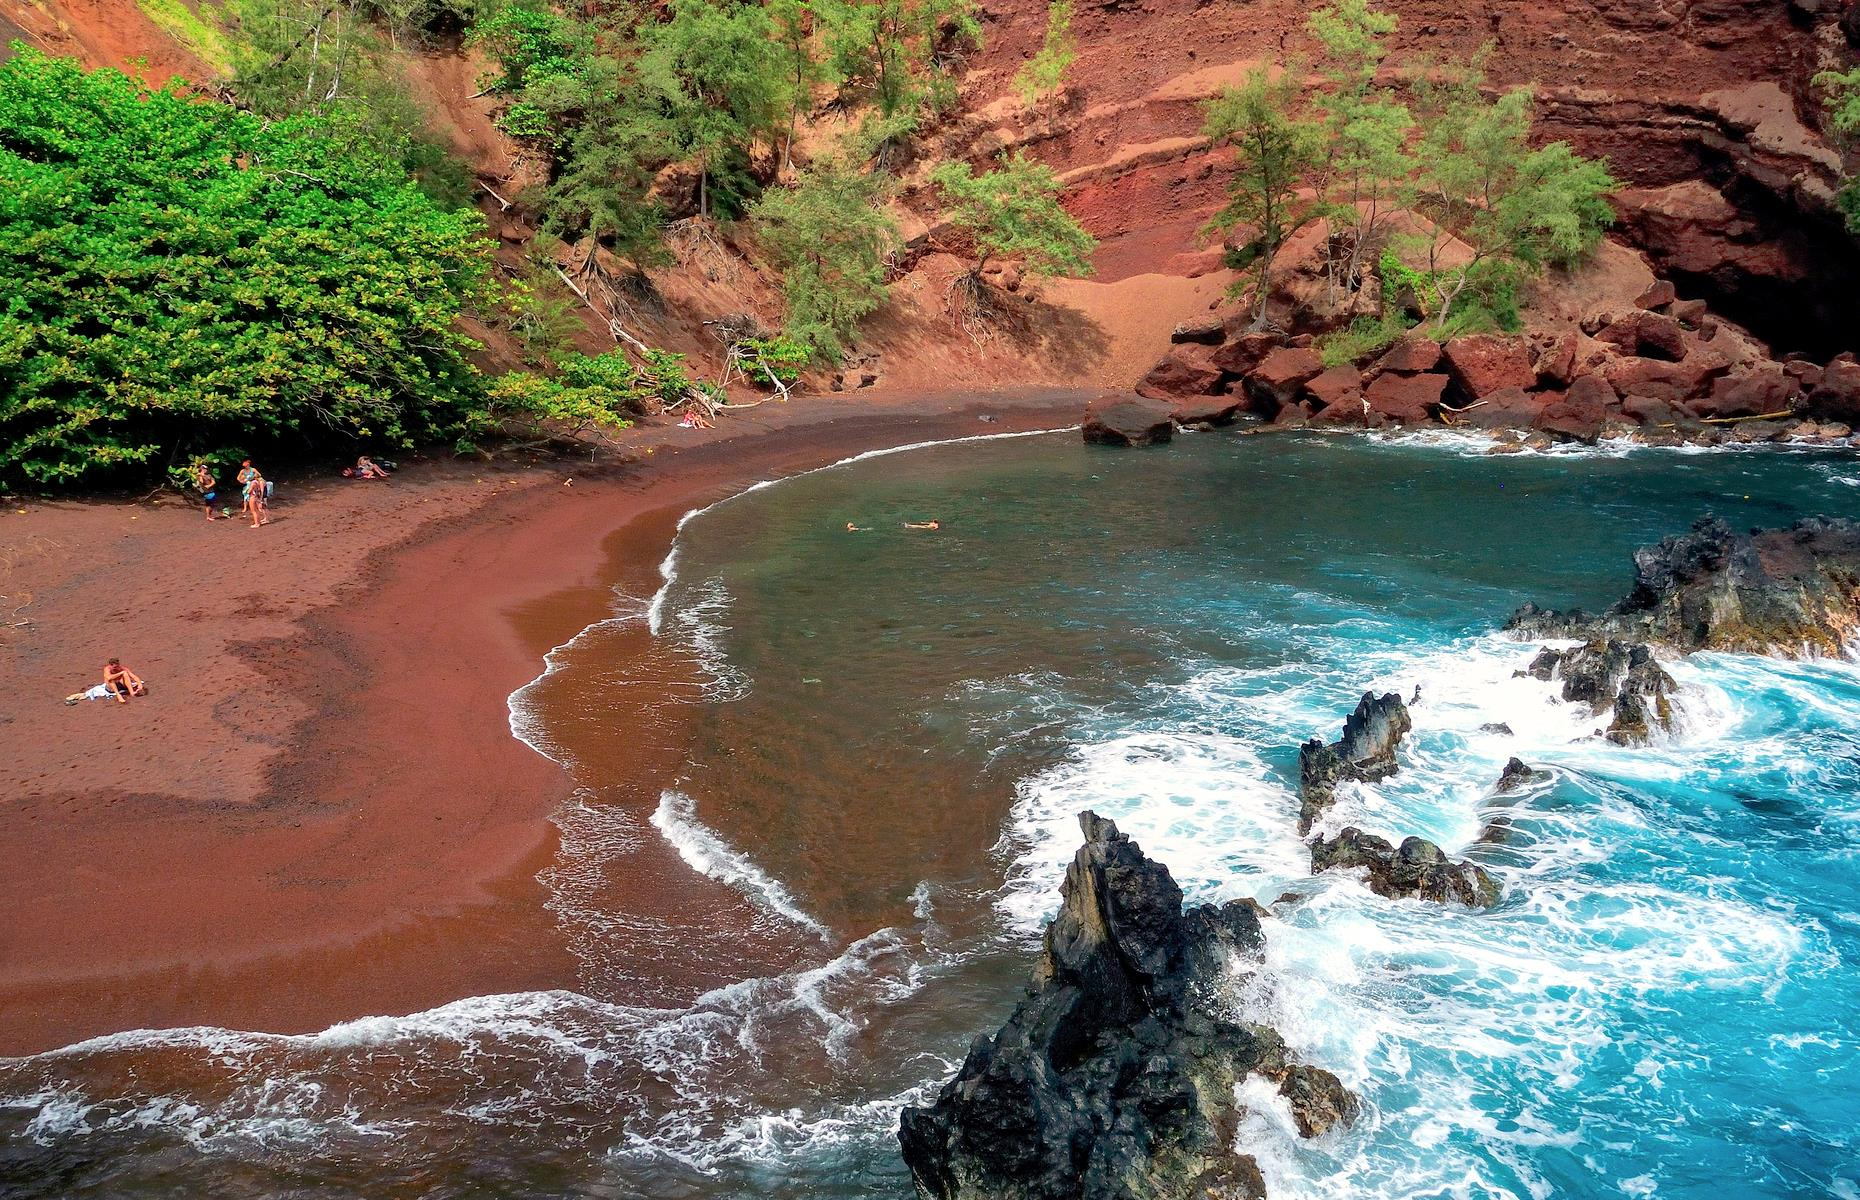 Slide 45 of 61: Also known as Kaihalulu Beach, this rust-colored strand on Maui is gloriously secluded, its sand contrasting with the bright blue waters lapping at the shore. The ruddy hue is the result of the ever-eroding volcano that backs the crescent. The beach can be reached via a steep, narrow trail (note that many consider the trail dangerous, hence the beach's relative seclusion), and there are no facilities, so come prepared.